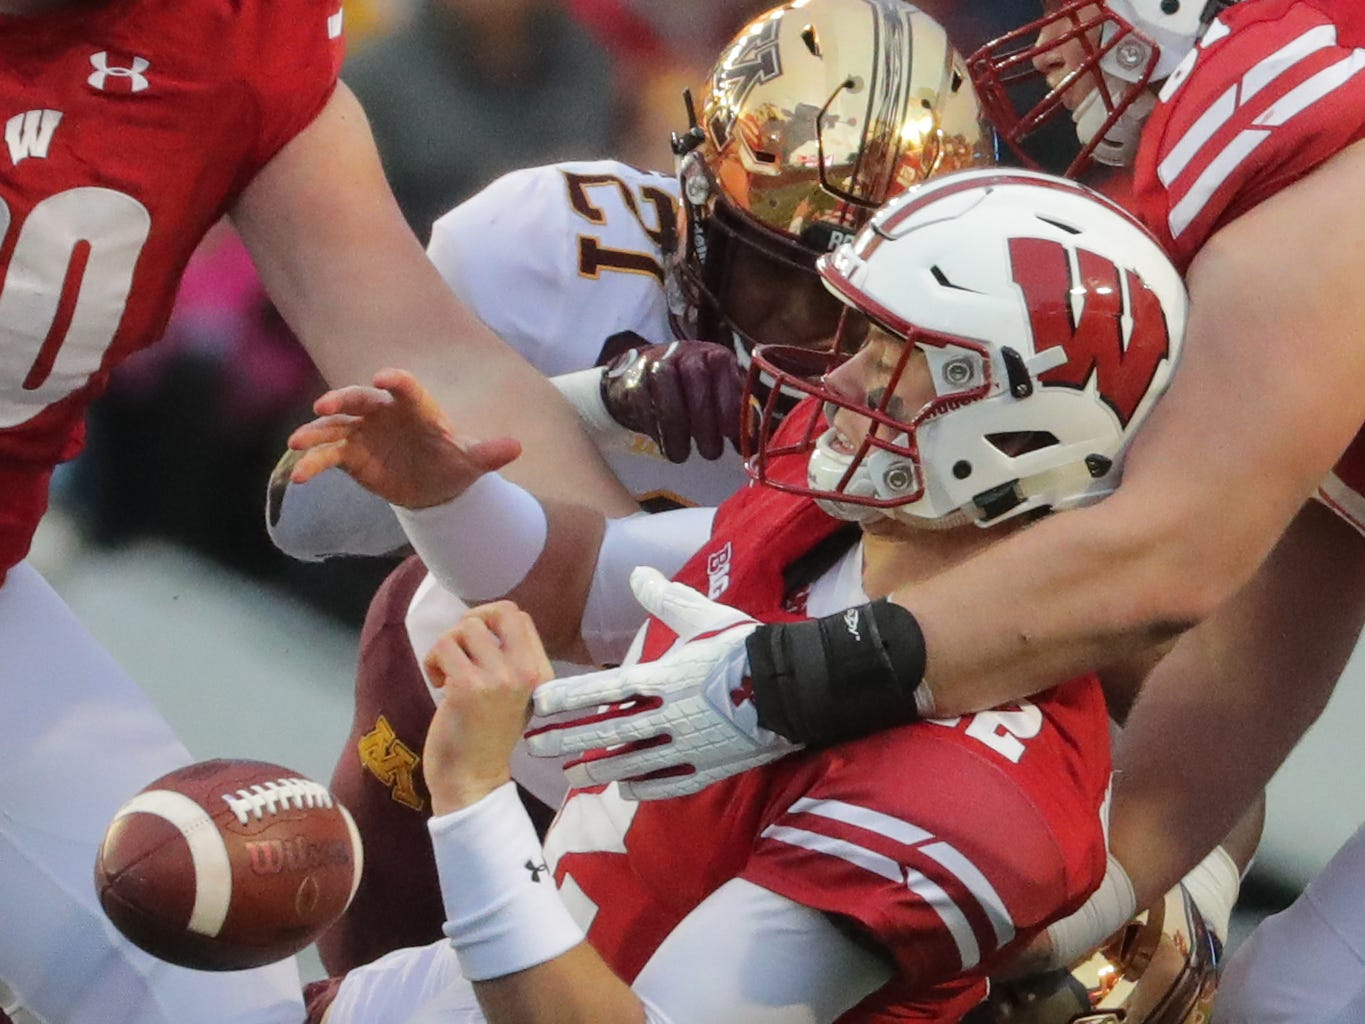 Wisconsin quarterback Alex Hornibrook fumbles while being sacked by the Golden Gophers defense in the second quarter Saturday at Camp Randall Stadium in Madison.